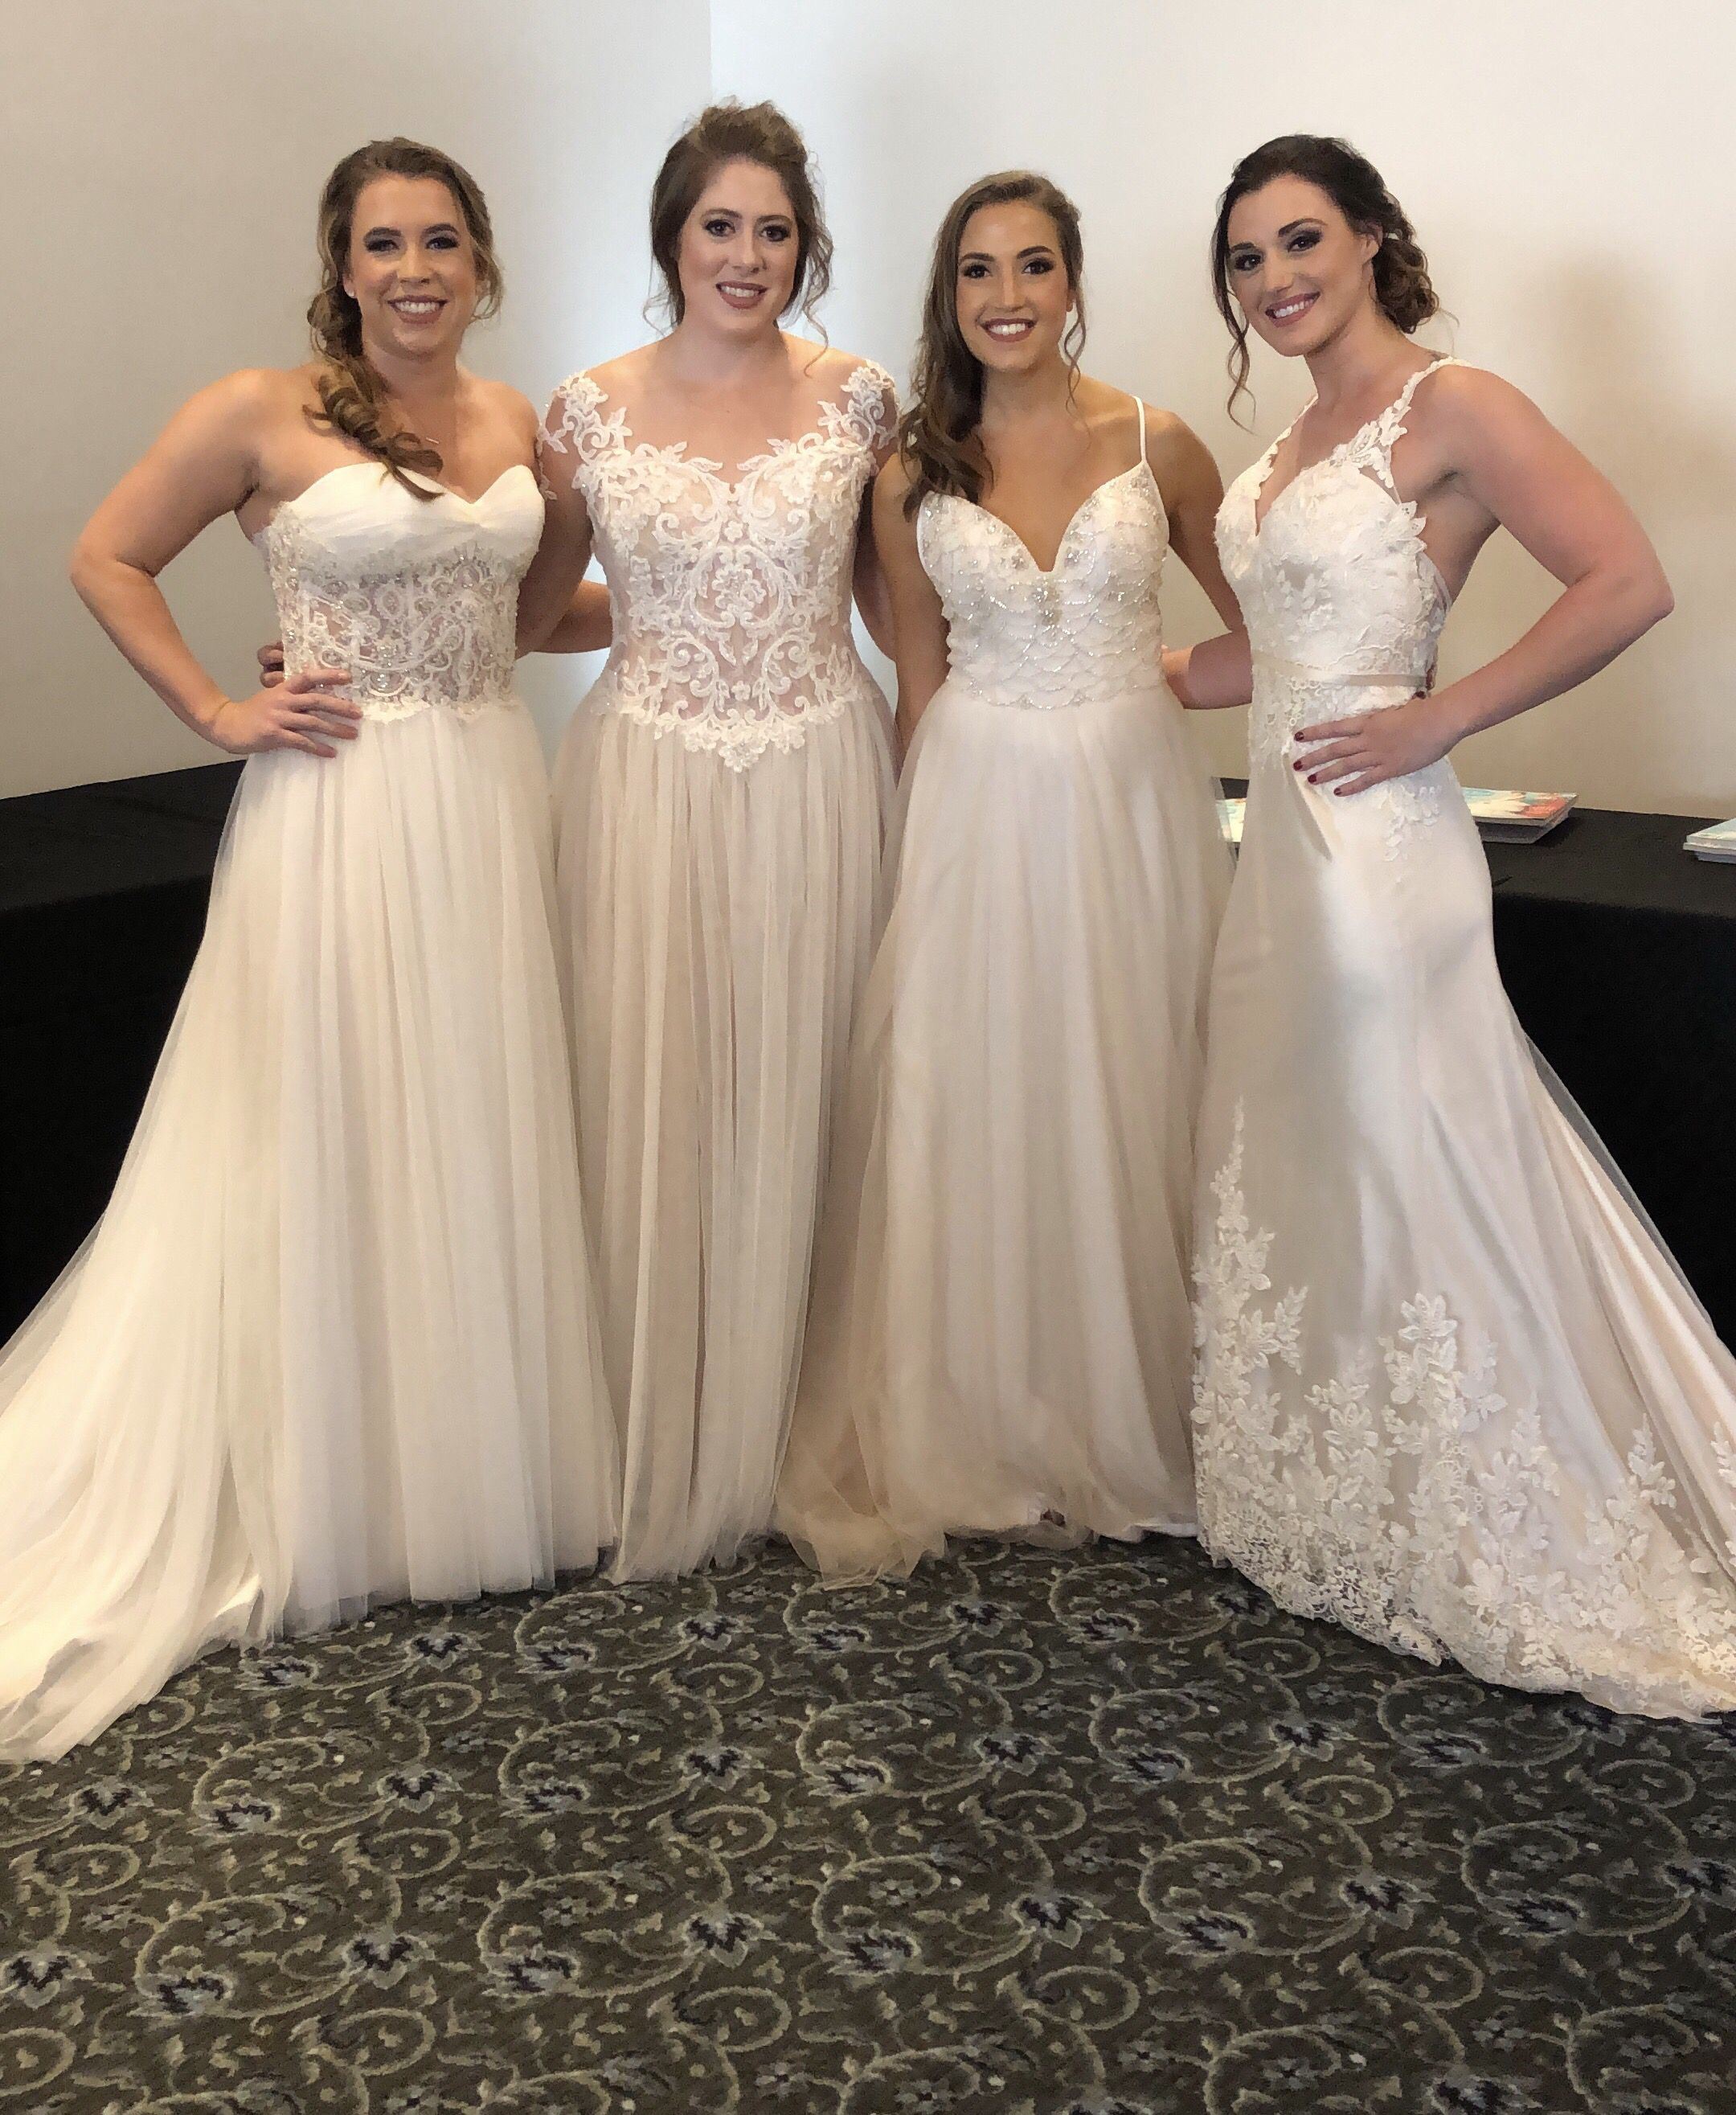 Wedding Dress Shop Warrington: We Had A Wonderful Time Putting On The Bridal Show At The